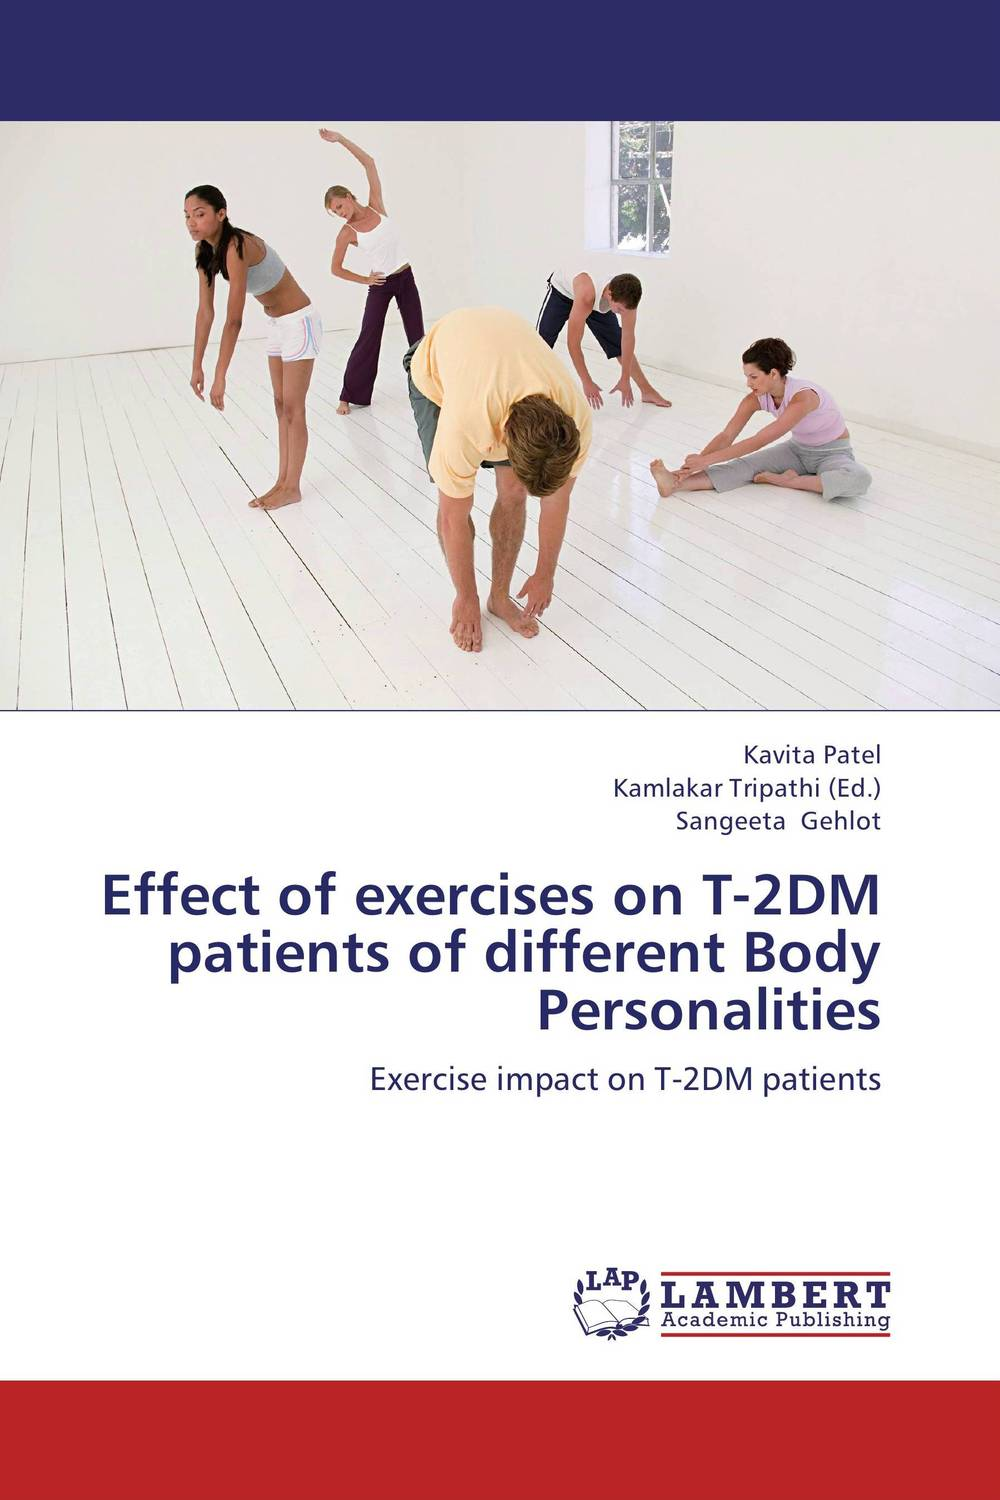 Effect of exercises on T-2DM patients of different Body Personalities eskow j elliot t rossio t the mask of zorro level 2 сd